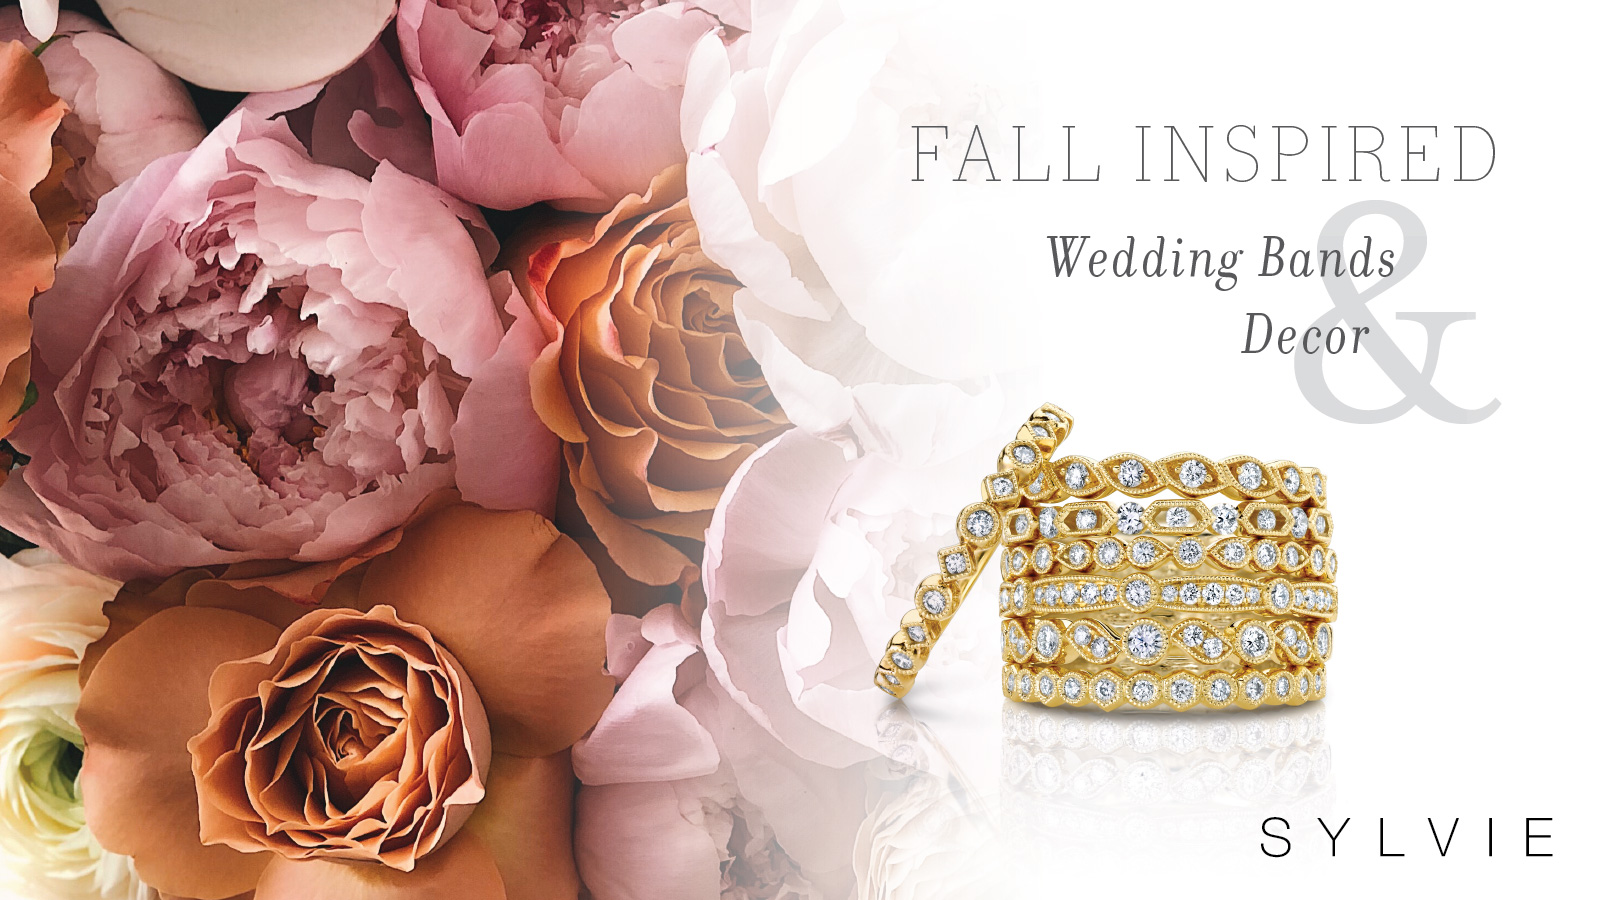 Fall Inspried Wedding Bands and Decor - Sylvie collection